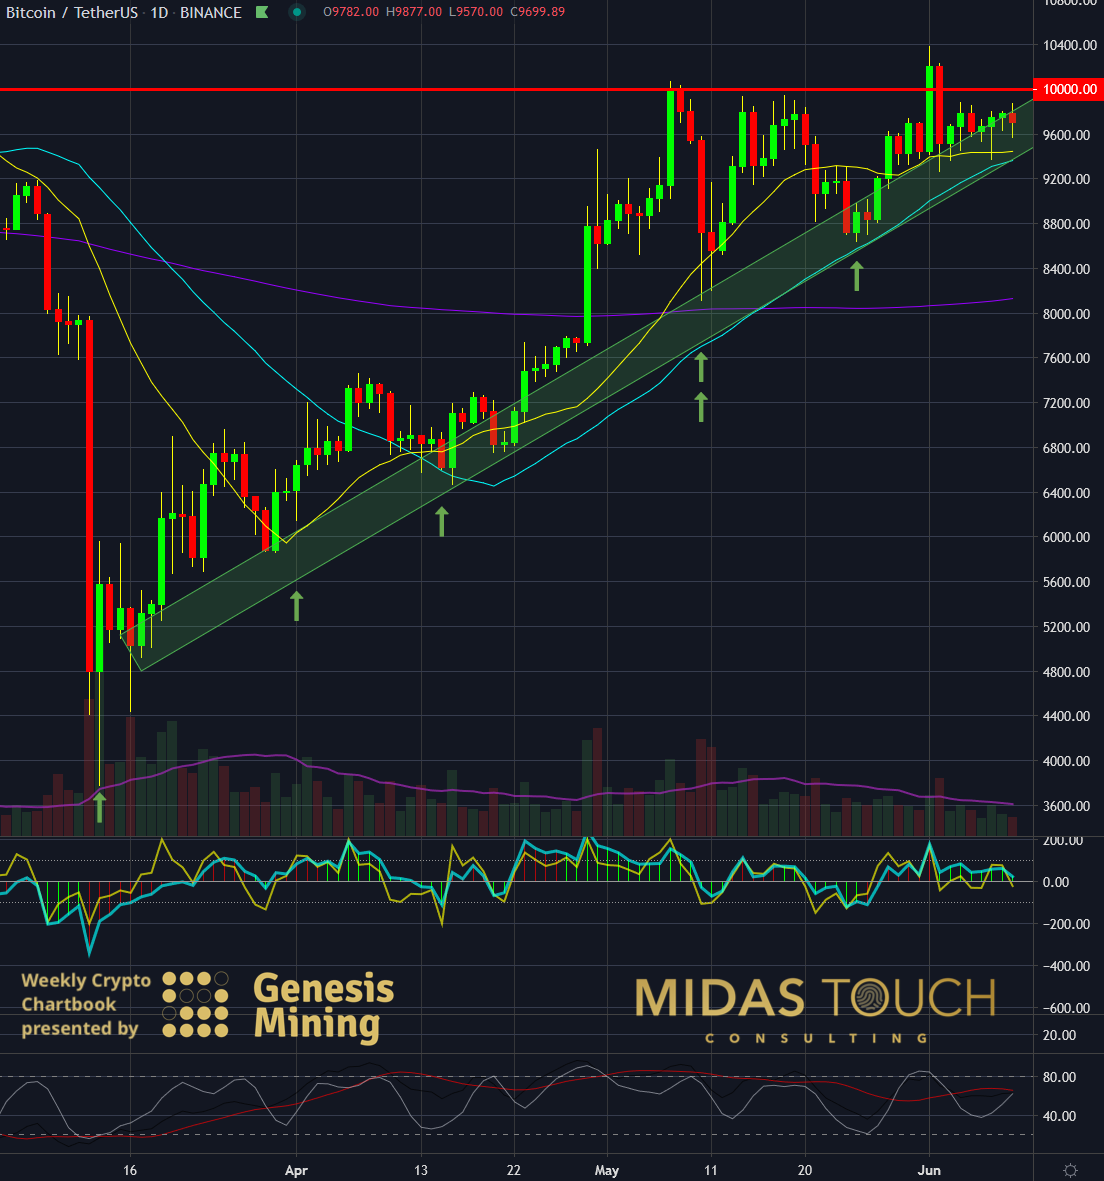 BTC-USDT, daily chart as of June 9th, 2020